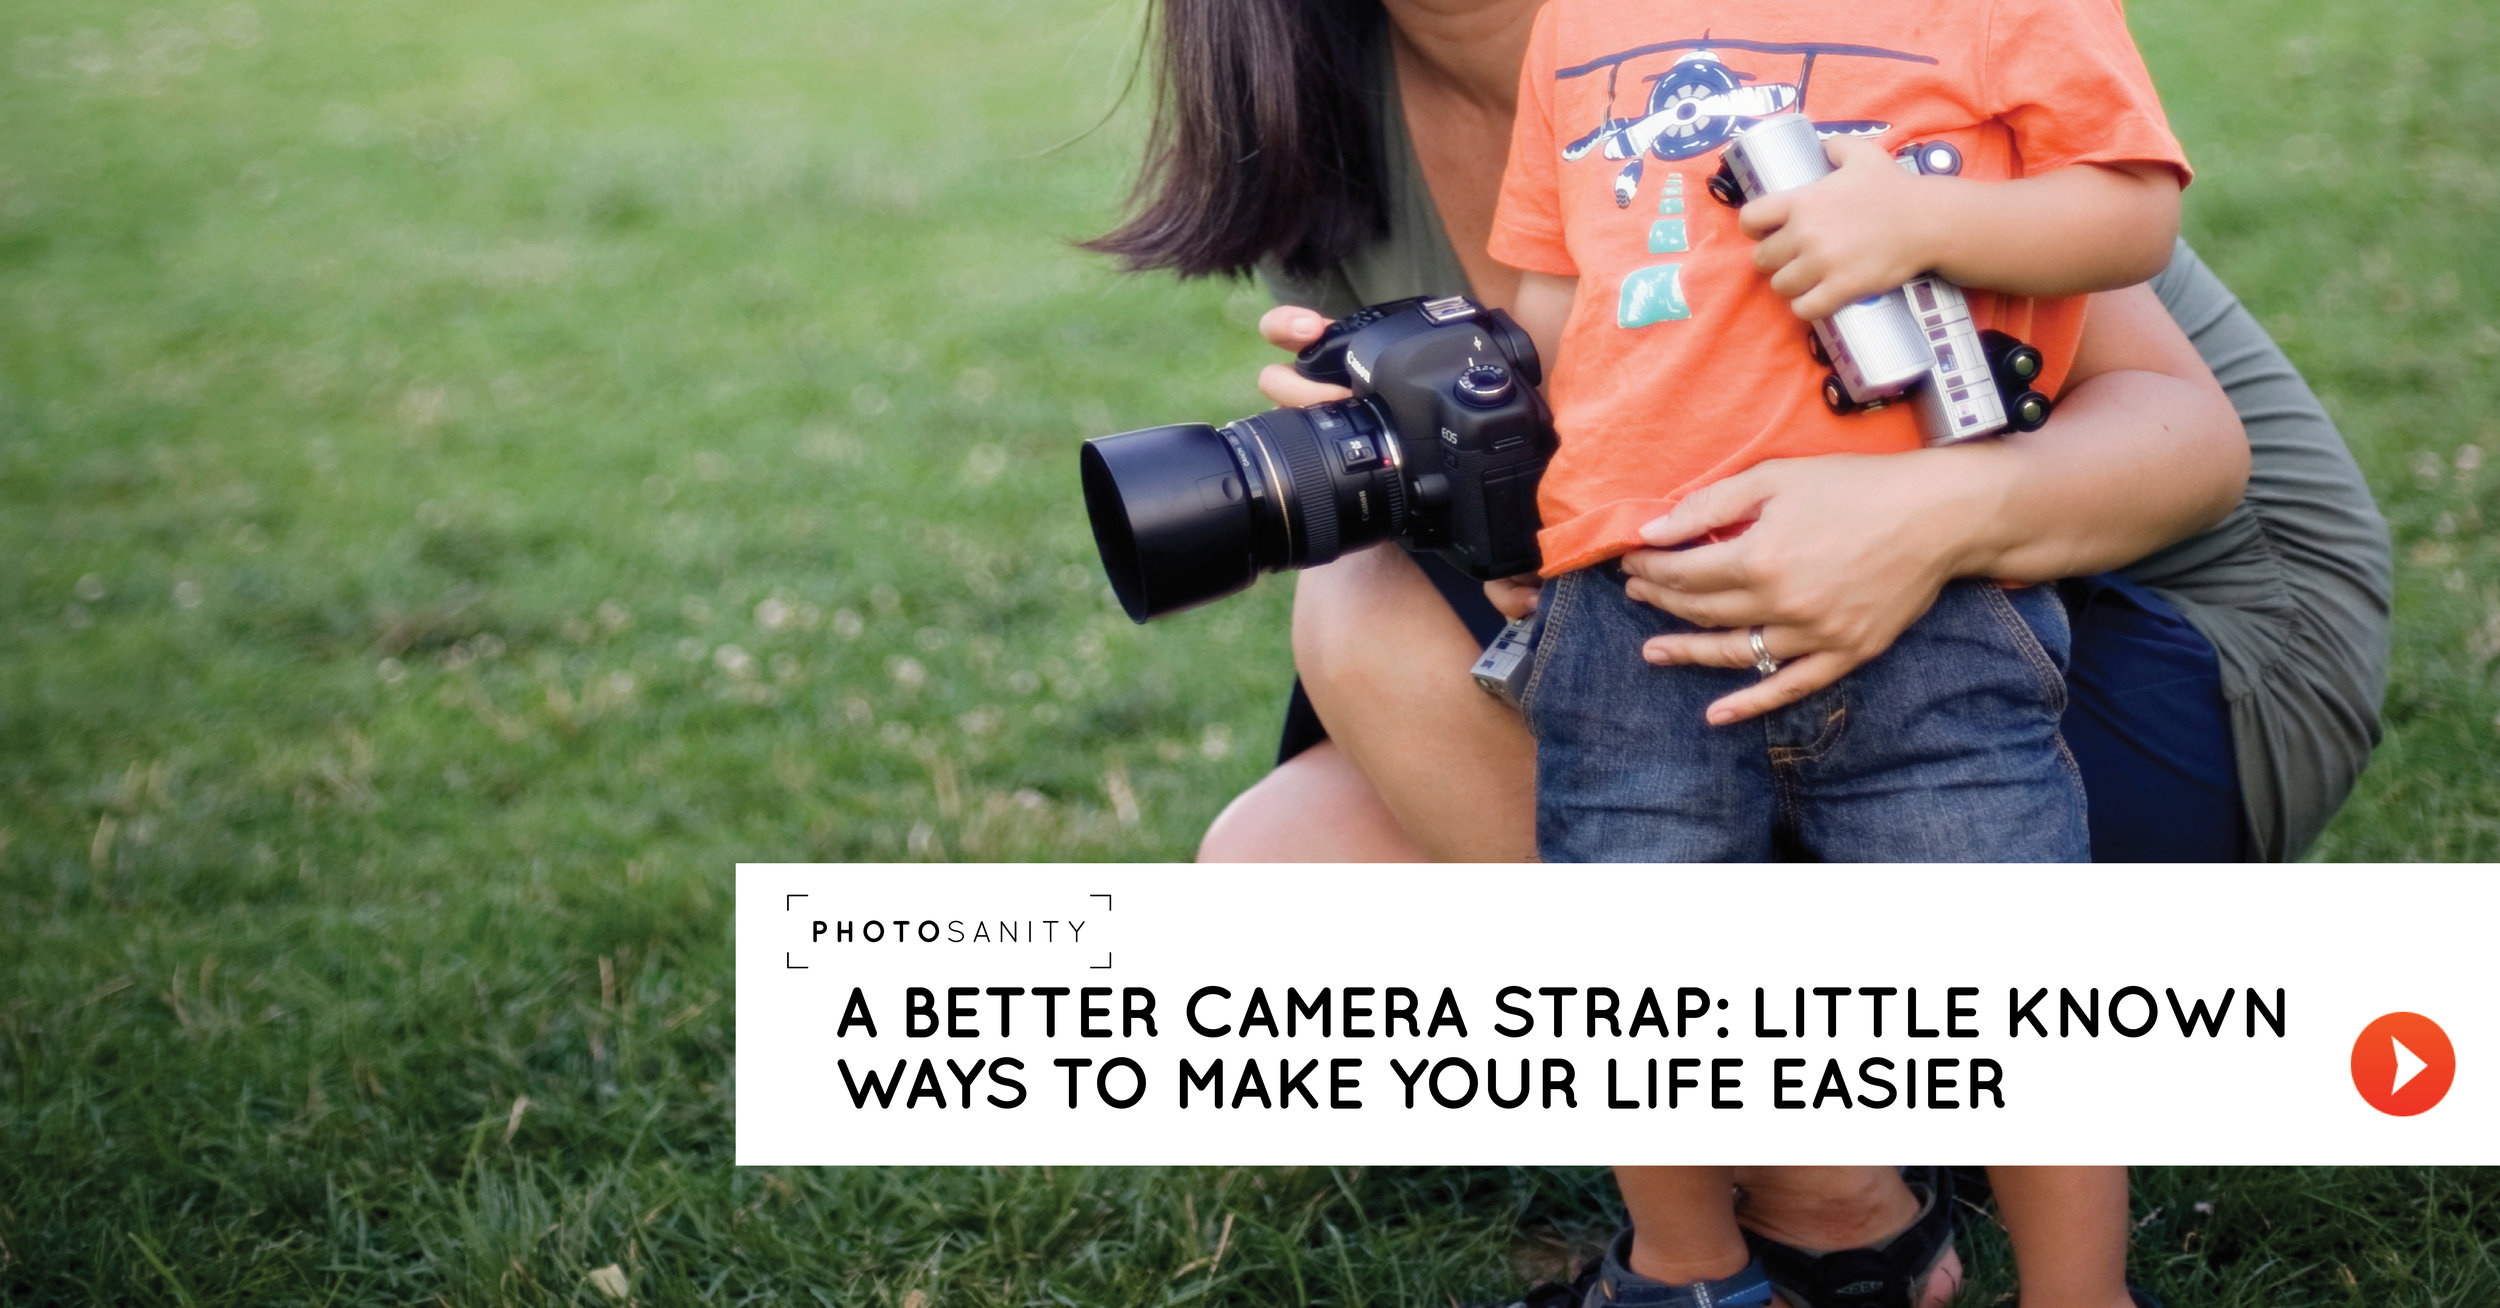 A better camera strap: little known ways to make your life easier